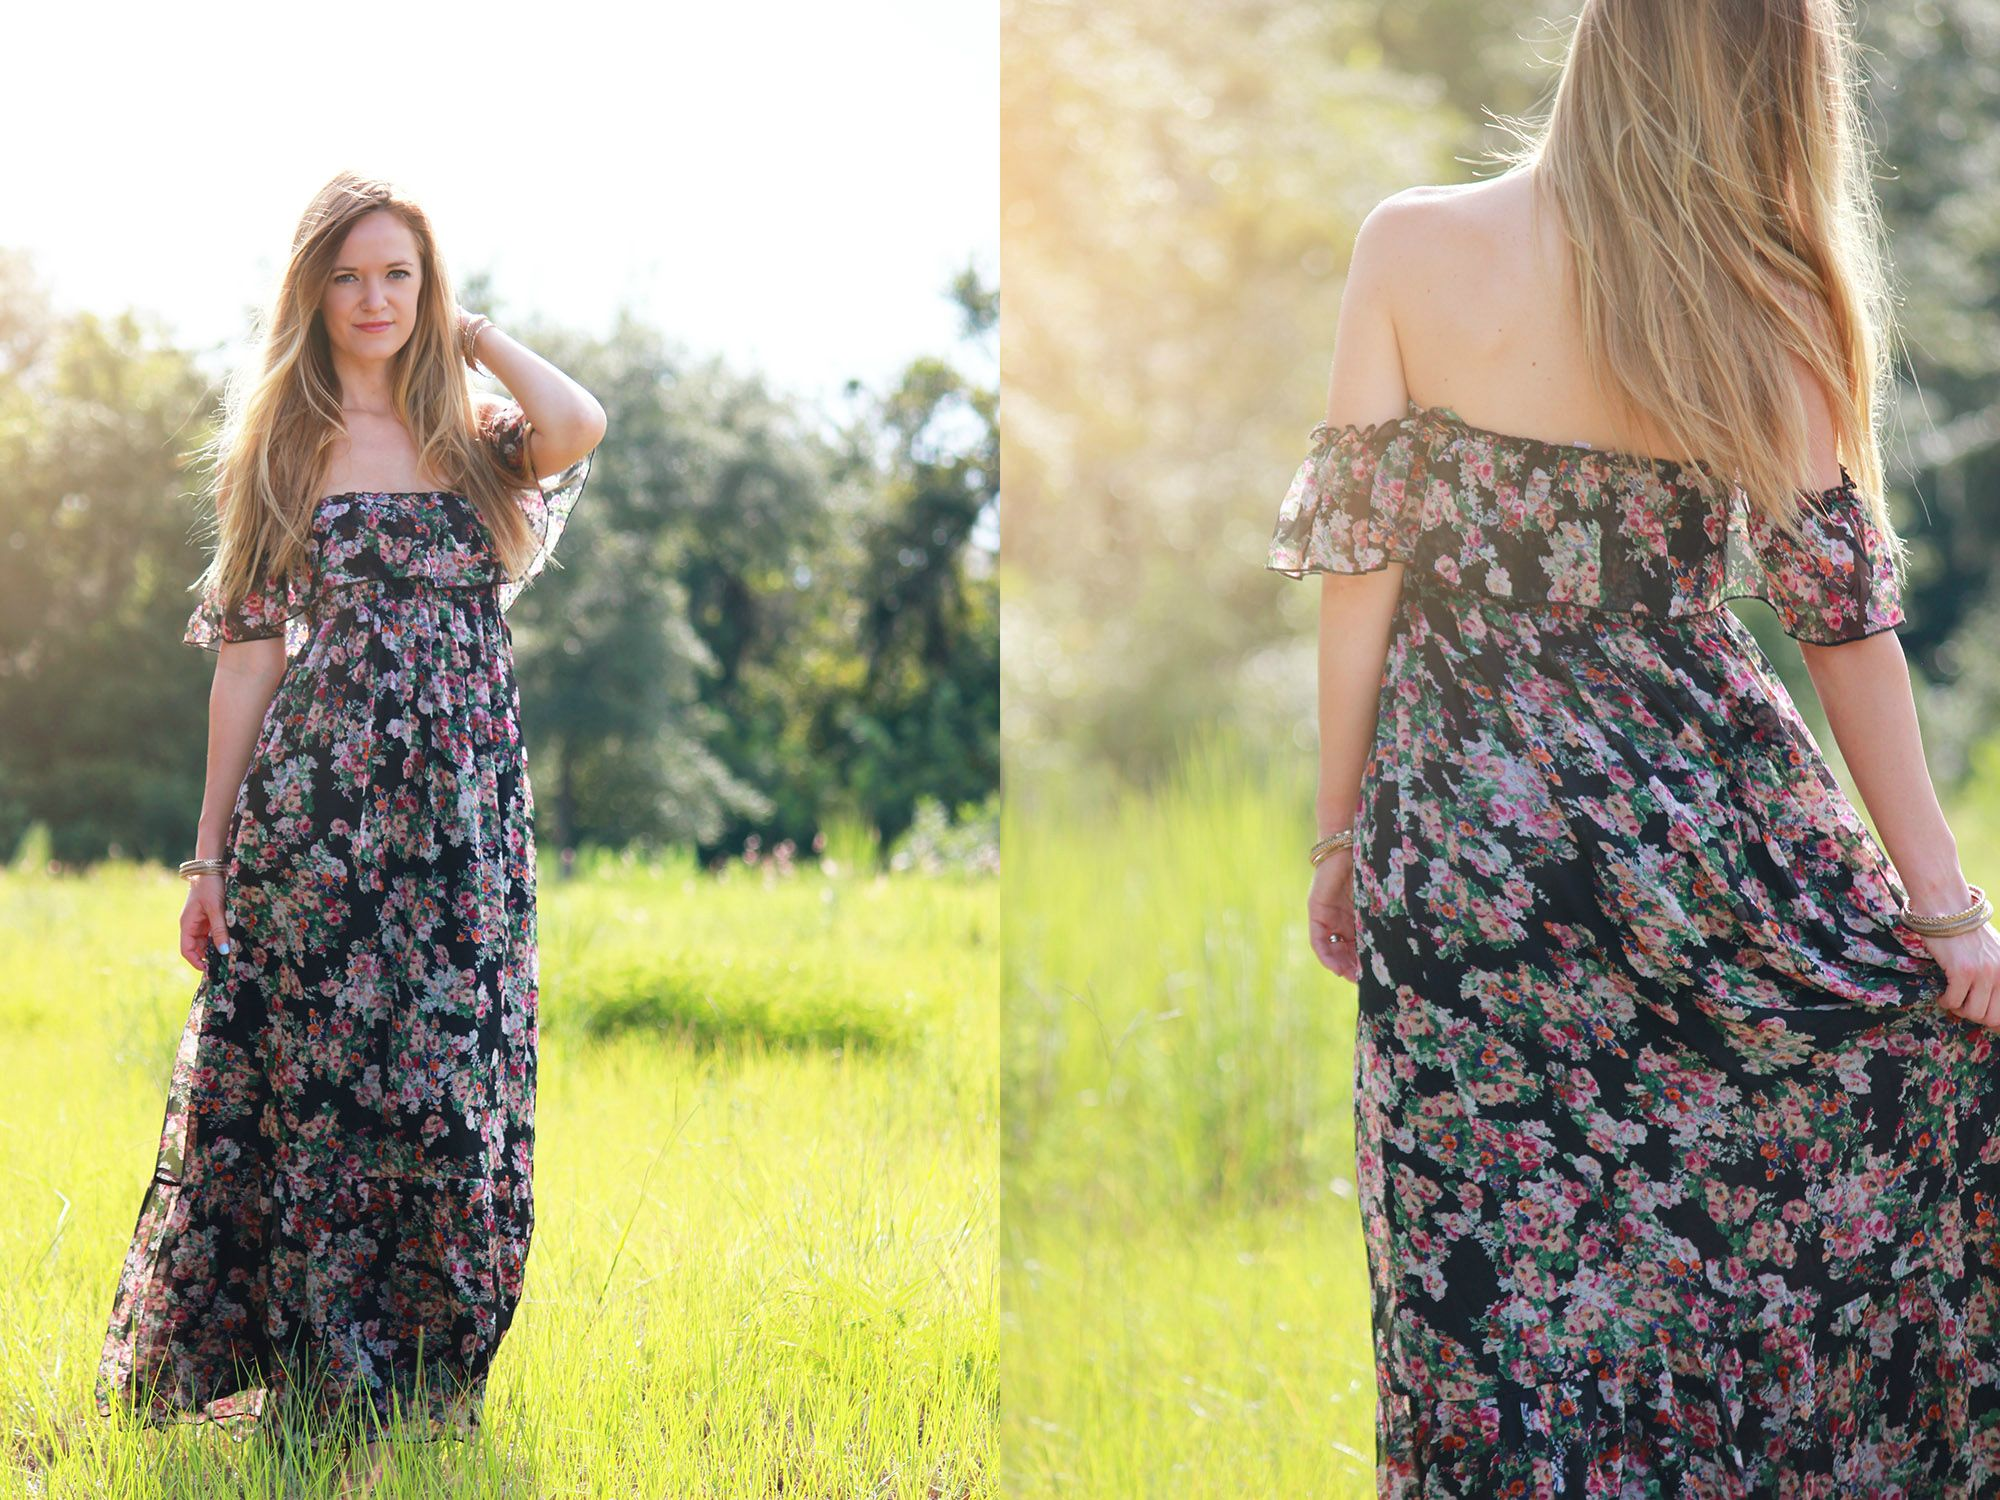 ami clubwear dress, floral maxi dress, casual summer outfit, Summer maki dress